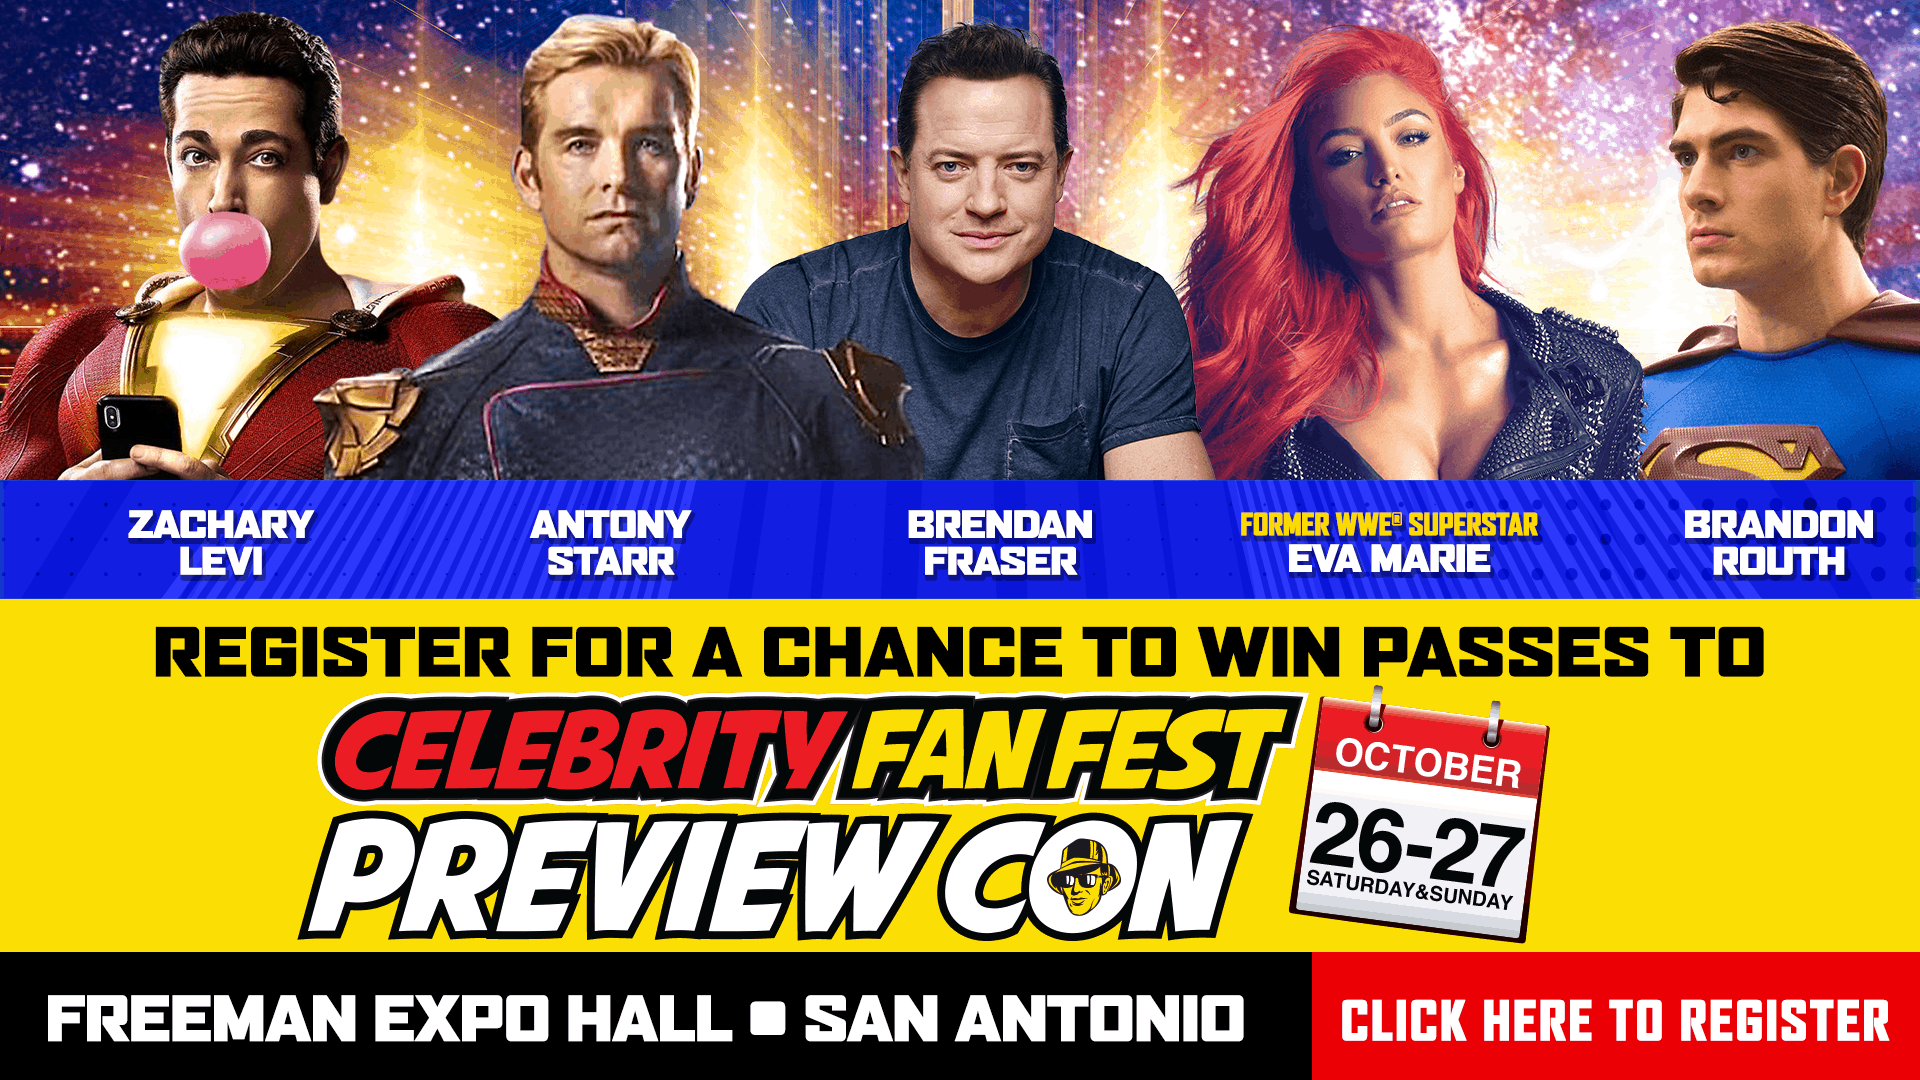 Register for your chance to win tickets to see Celebrity Fan Fest on October 26-27